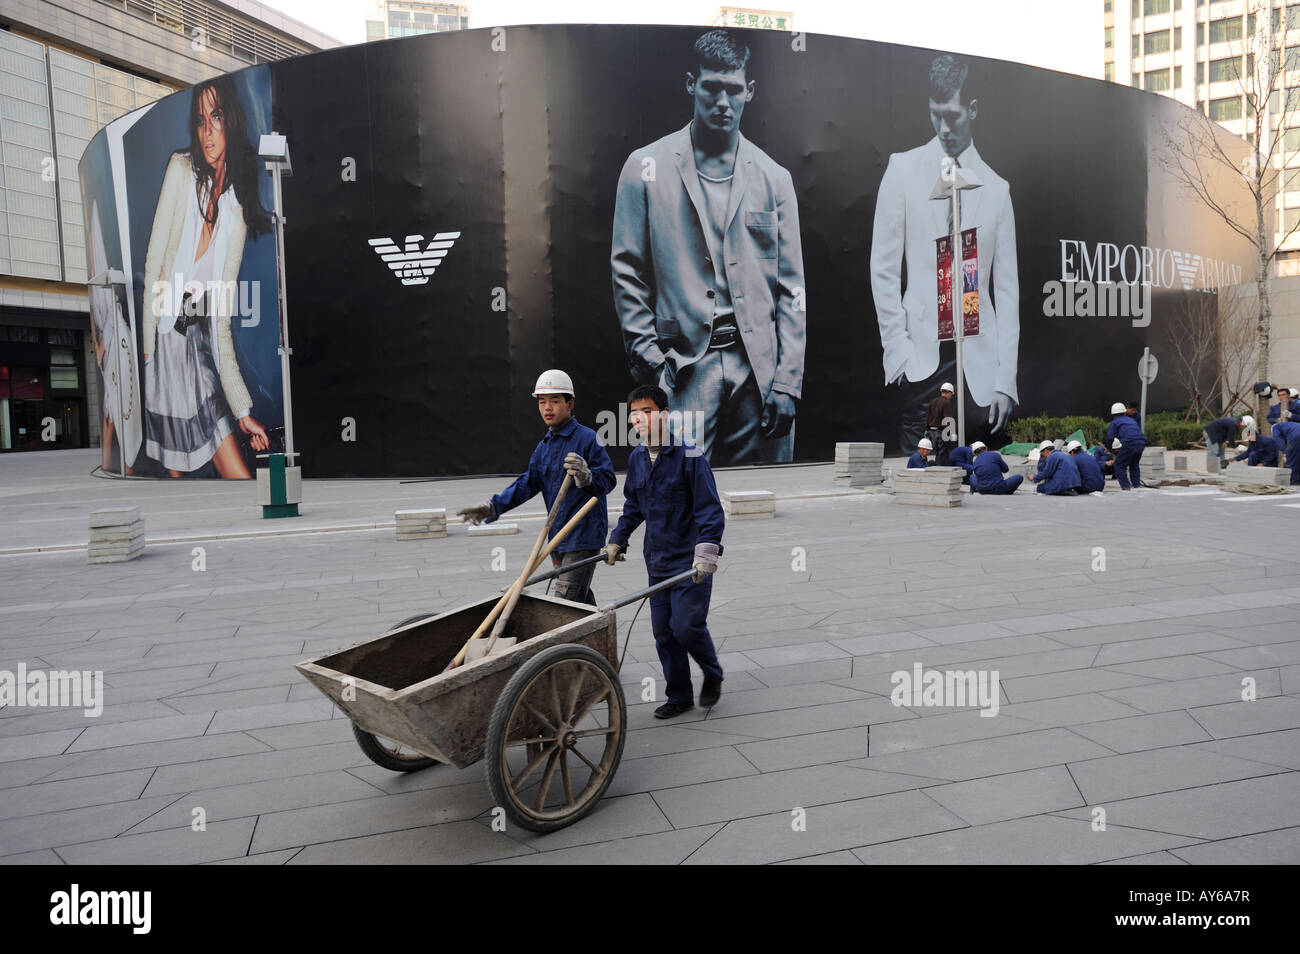 Chinese workers pave tiles in front of a huge billboard of Emporio Armani in Beijing CBD, China. 03-Apr-2008 - Stock Image